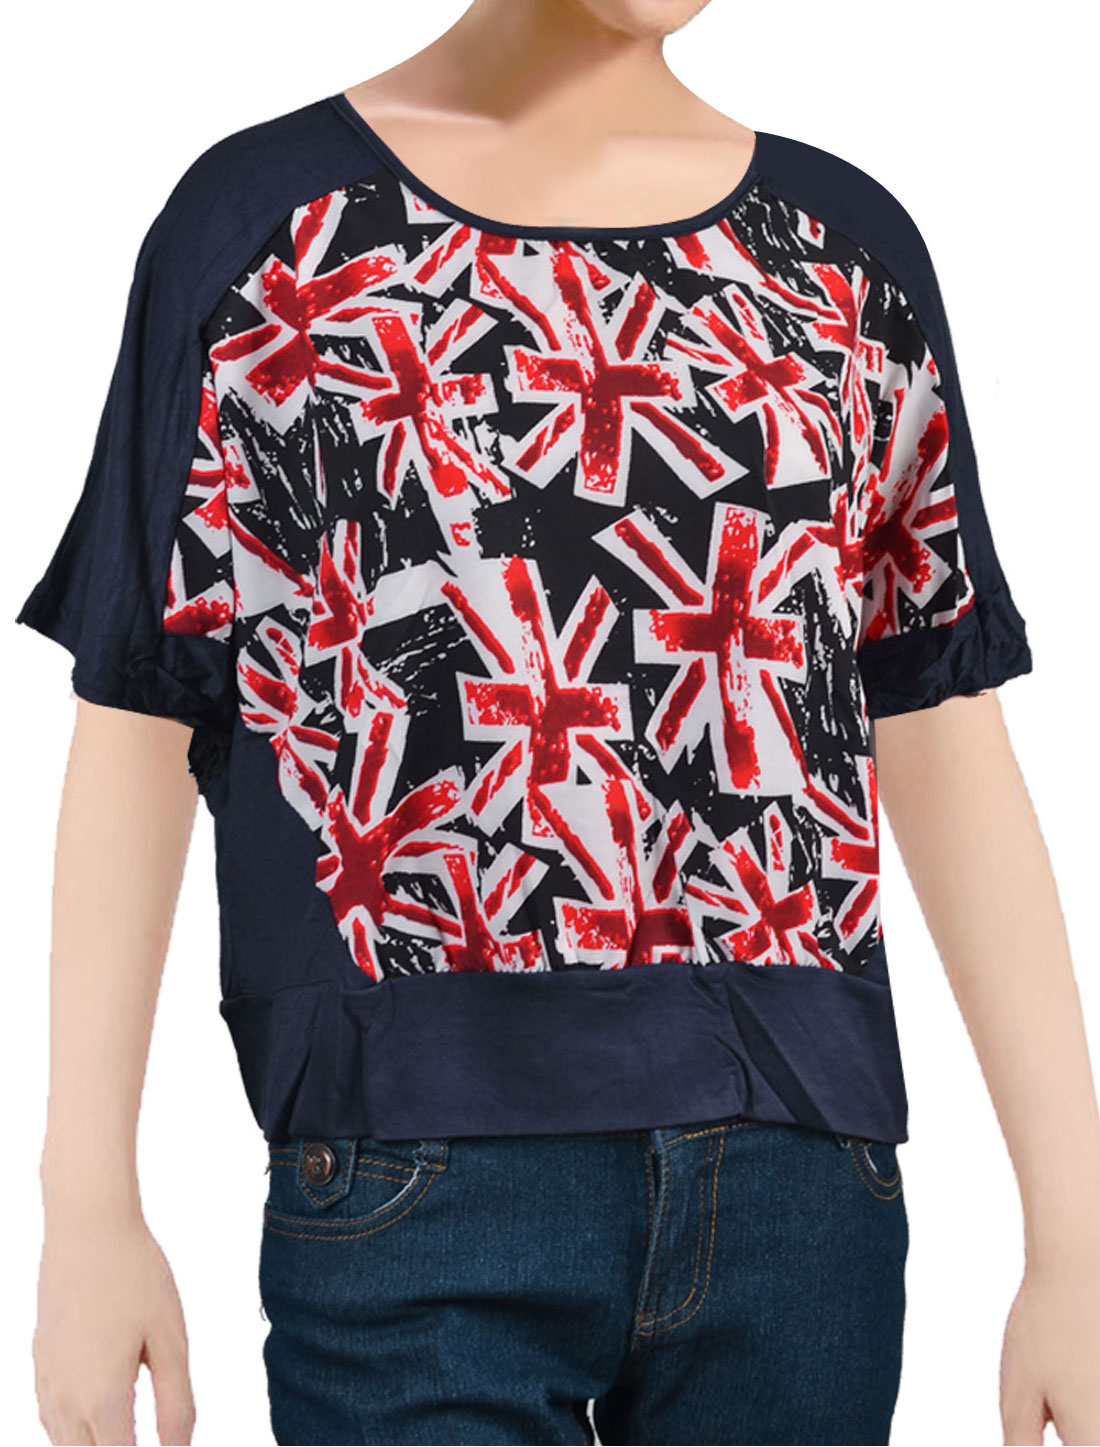 Woman Blue Union Jack Pattern Batwing Sleeves Blouse Top Shirt XL